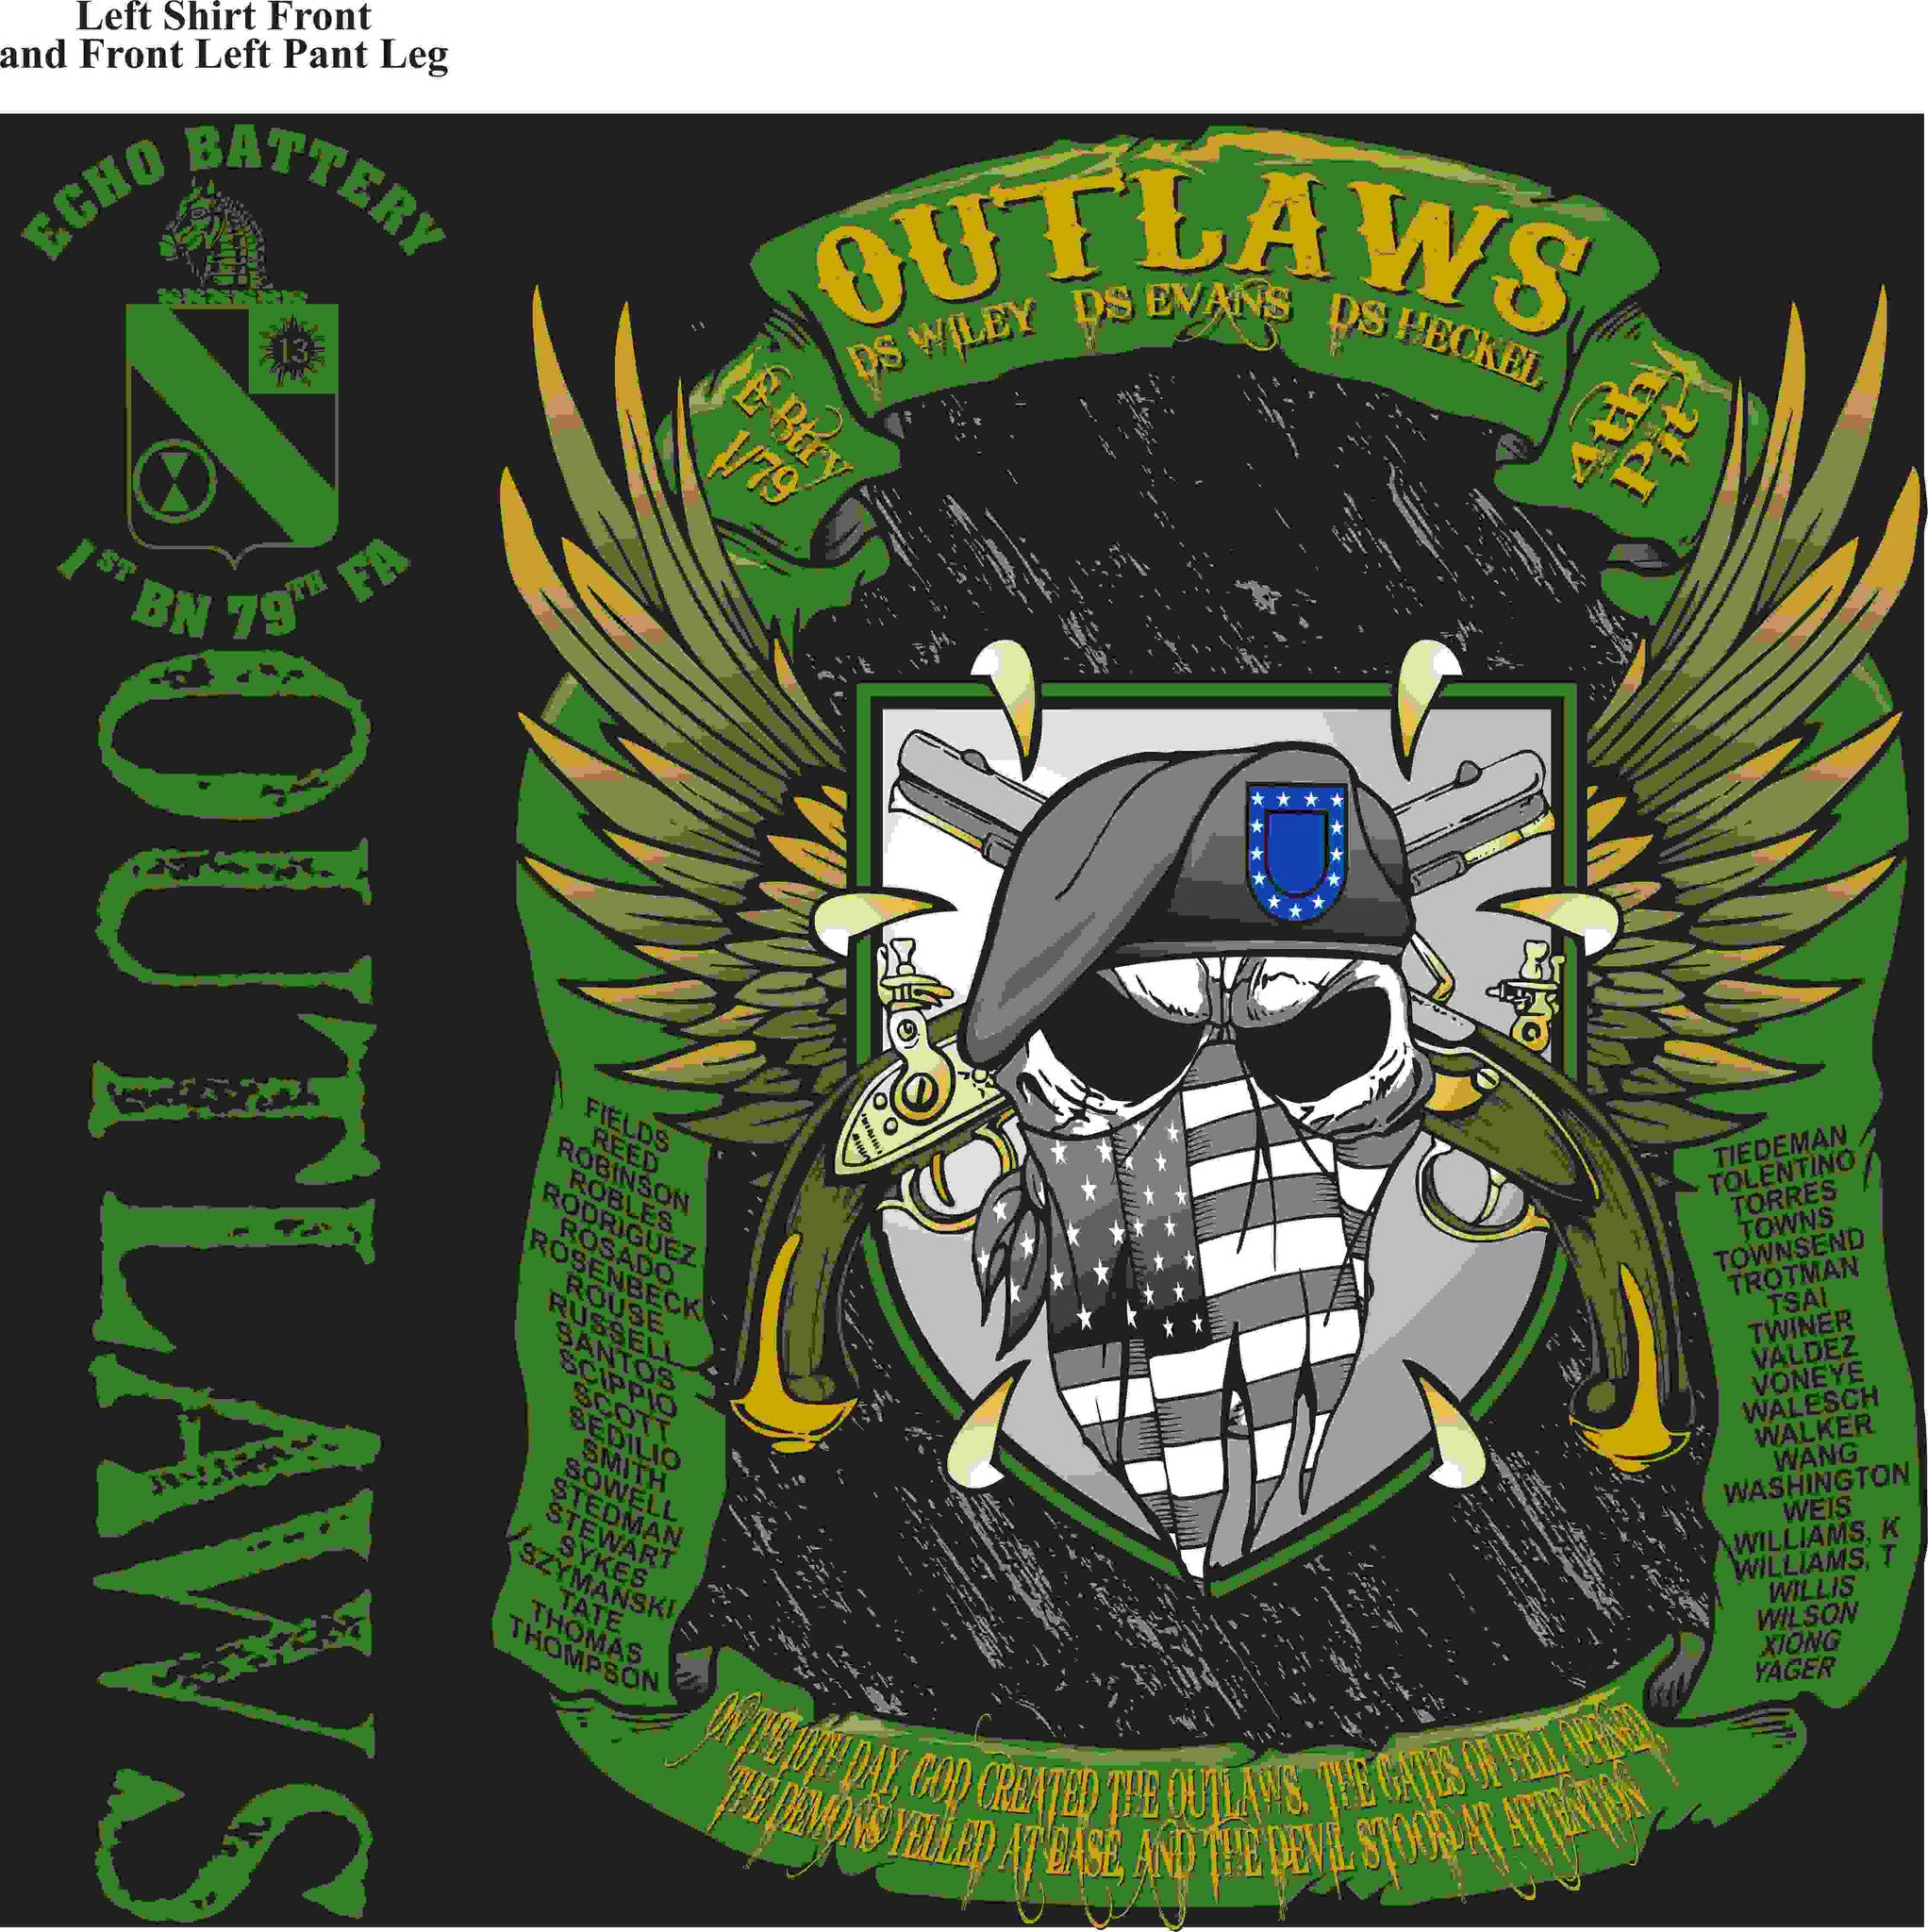 PLATOON SHIRTS (digital) ECHO 1st 79th OUTLAWS FEB 2016